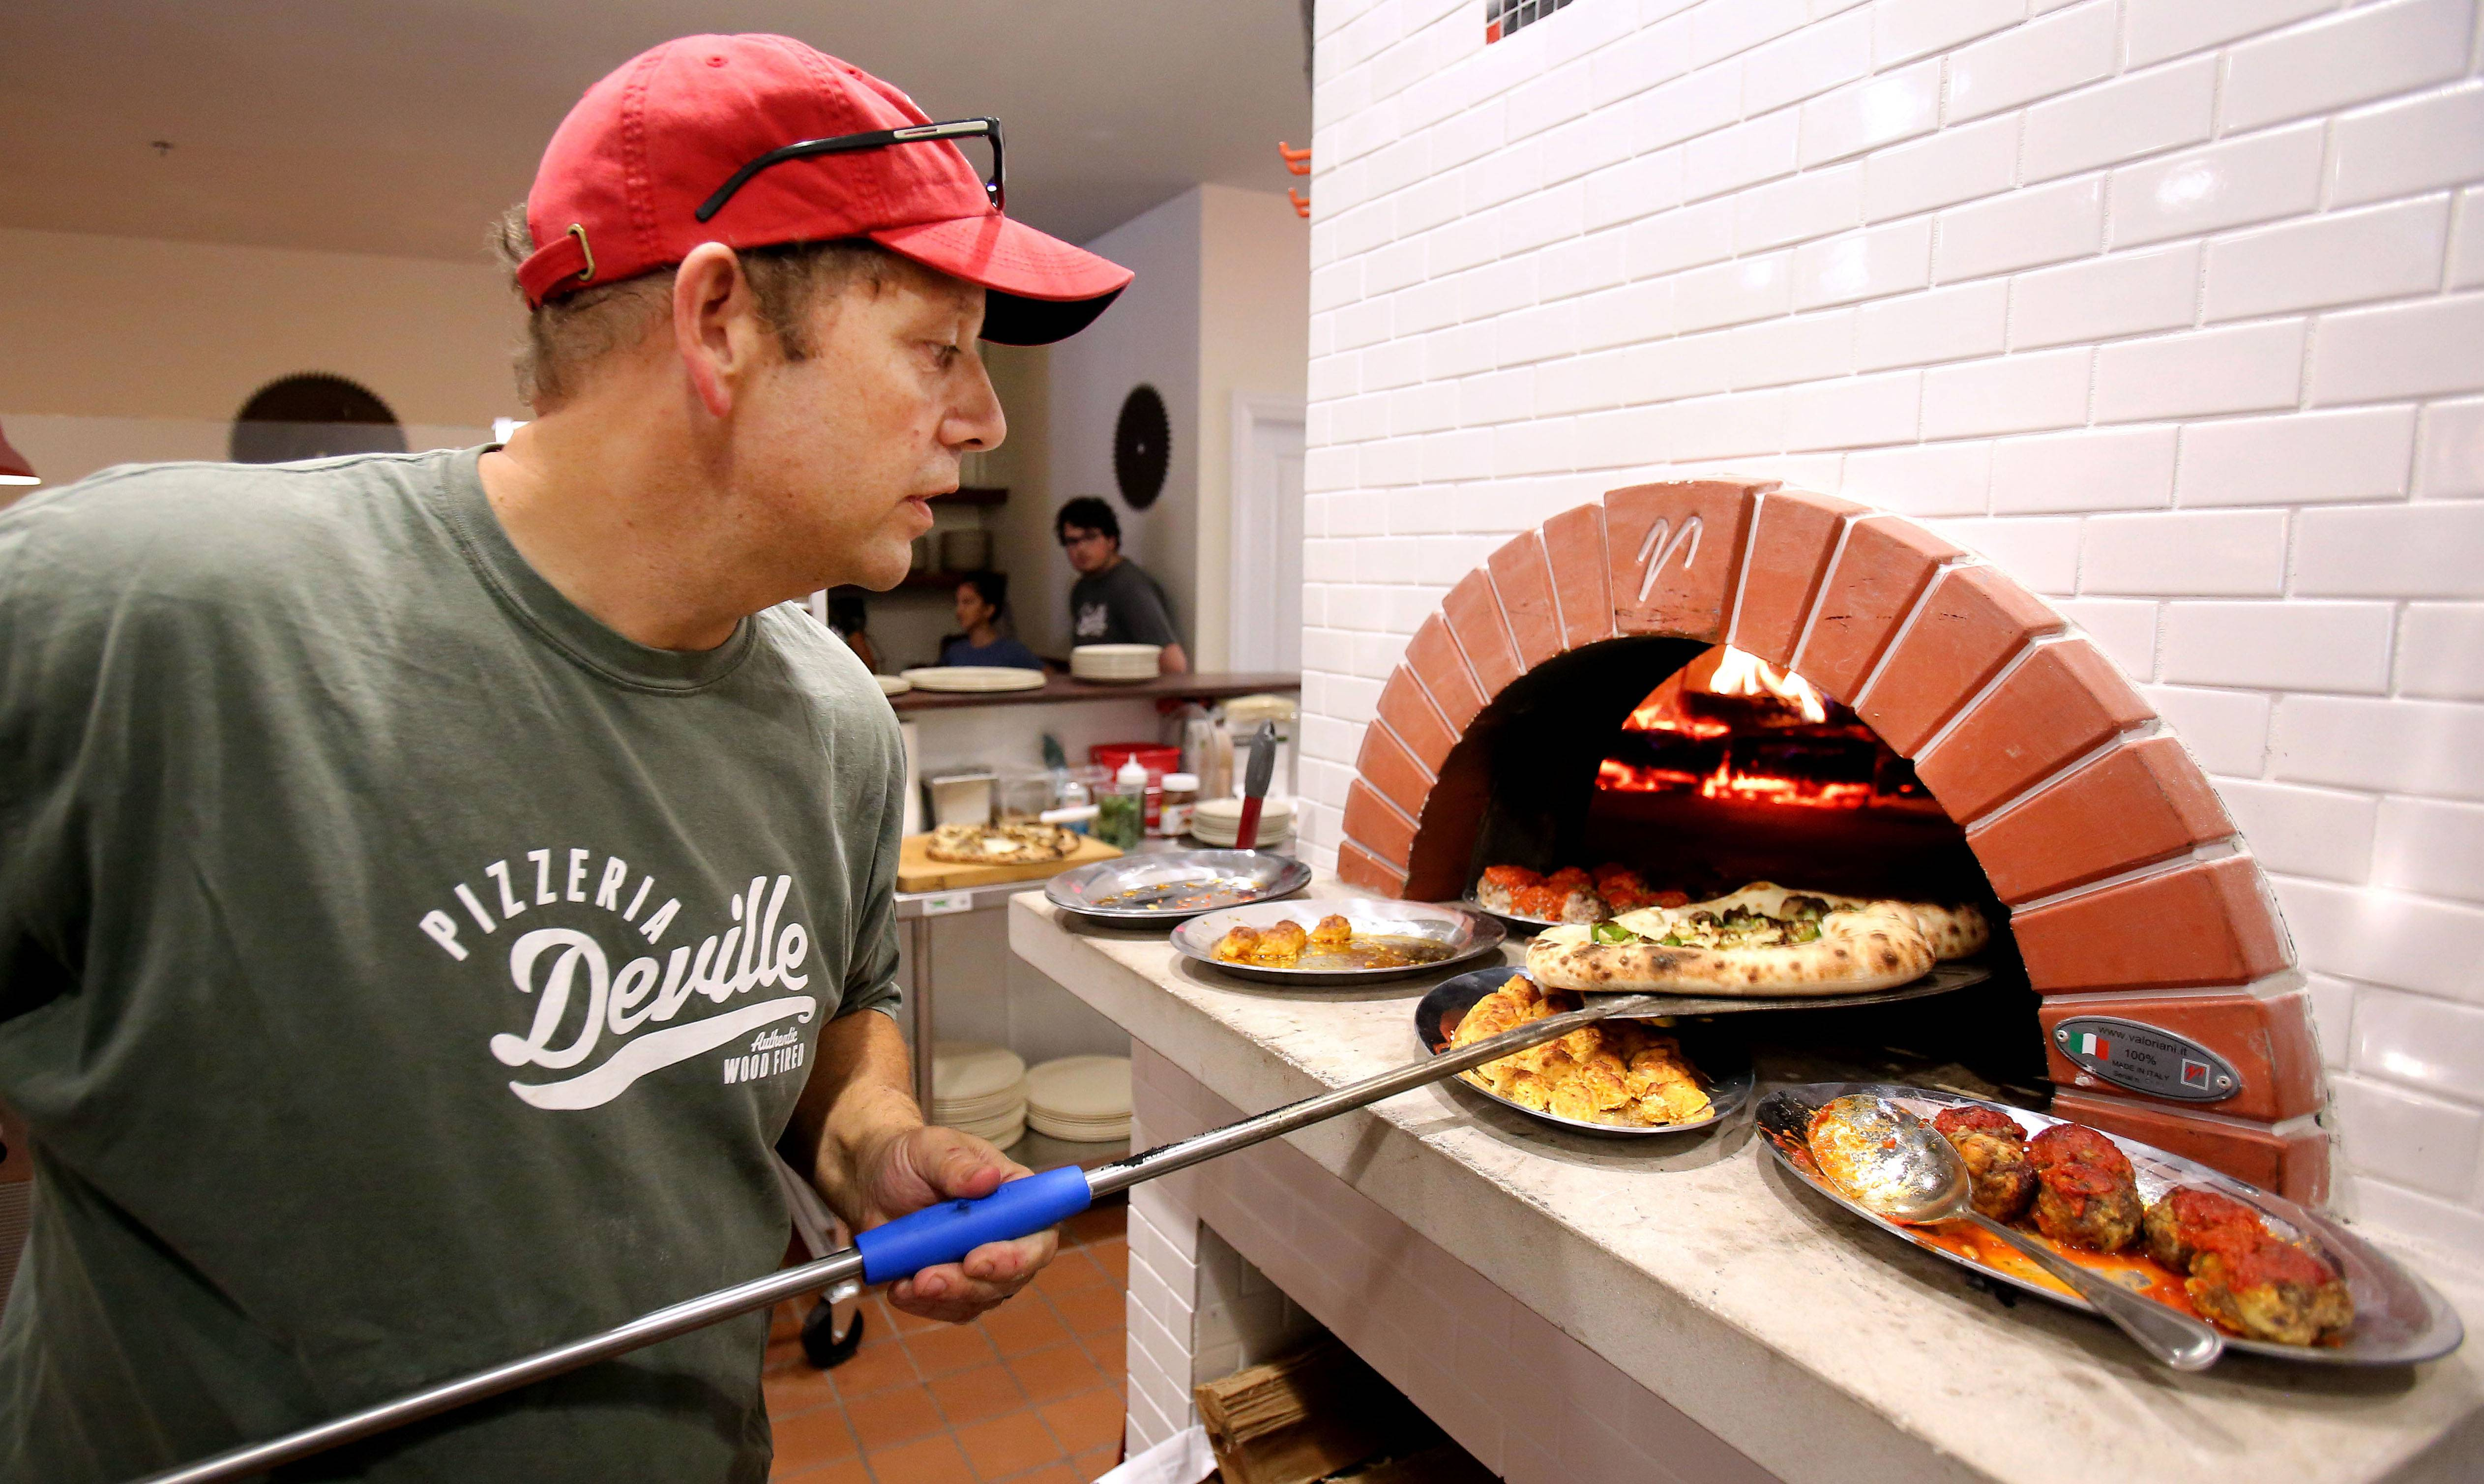 John Durning carefully pulls a pizza from the wood-fired oven during a tasting for his new restaurant Pizzeria DeVille in Libertyville.